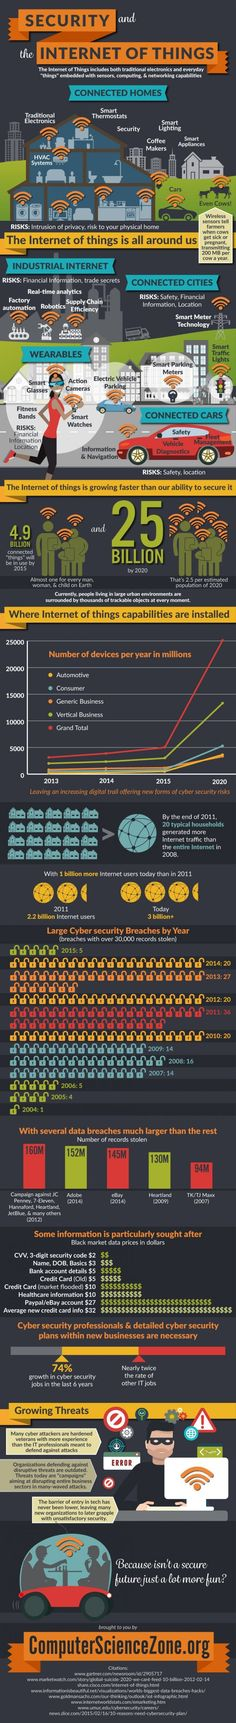 Security and the Internet of Things #IoT